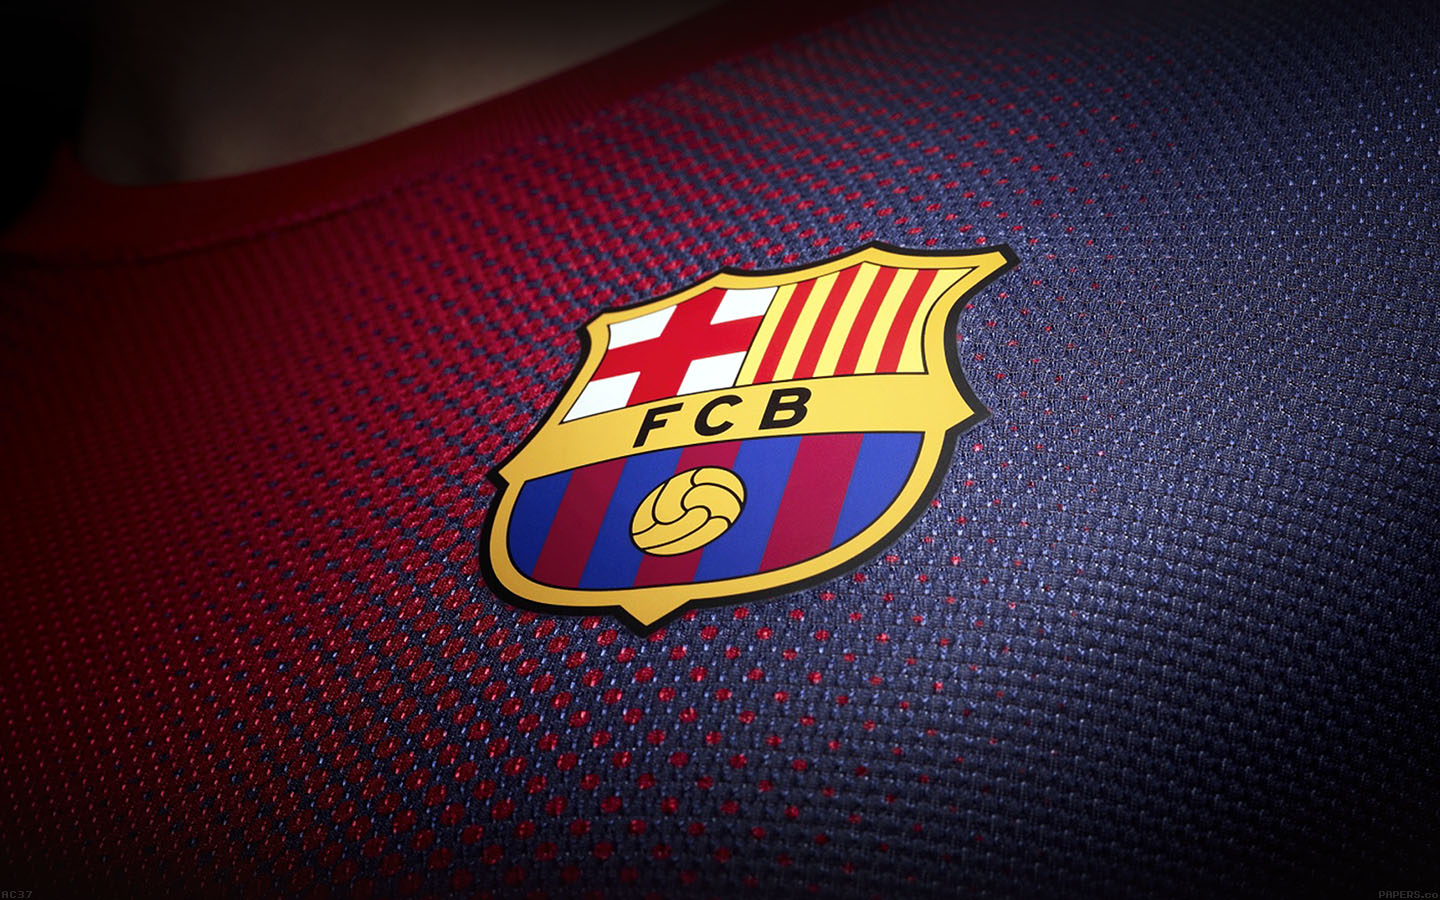 Cute Wallpapers For Macbook Pro Ac37 Wallpaper Barcelona Logo Emblem Sports Papers Co